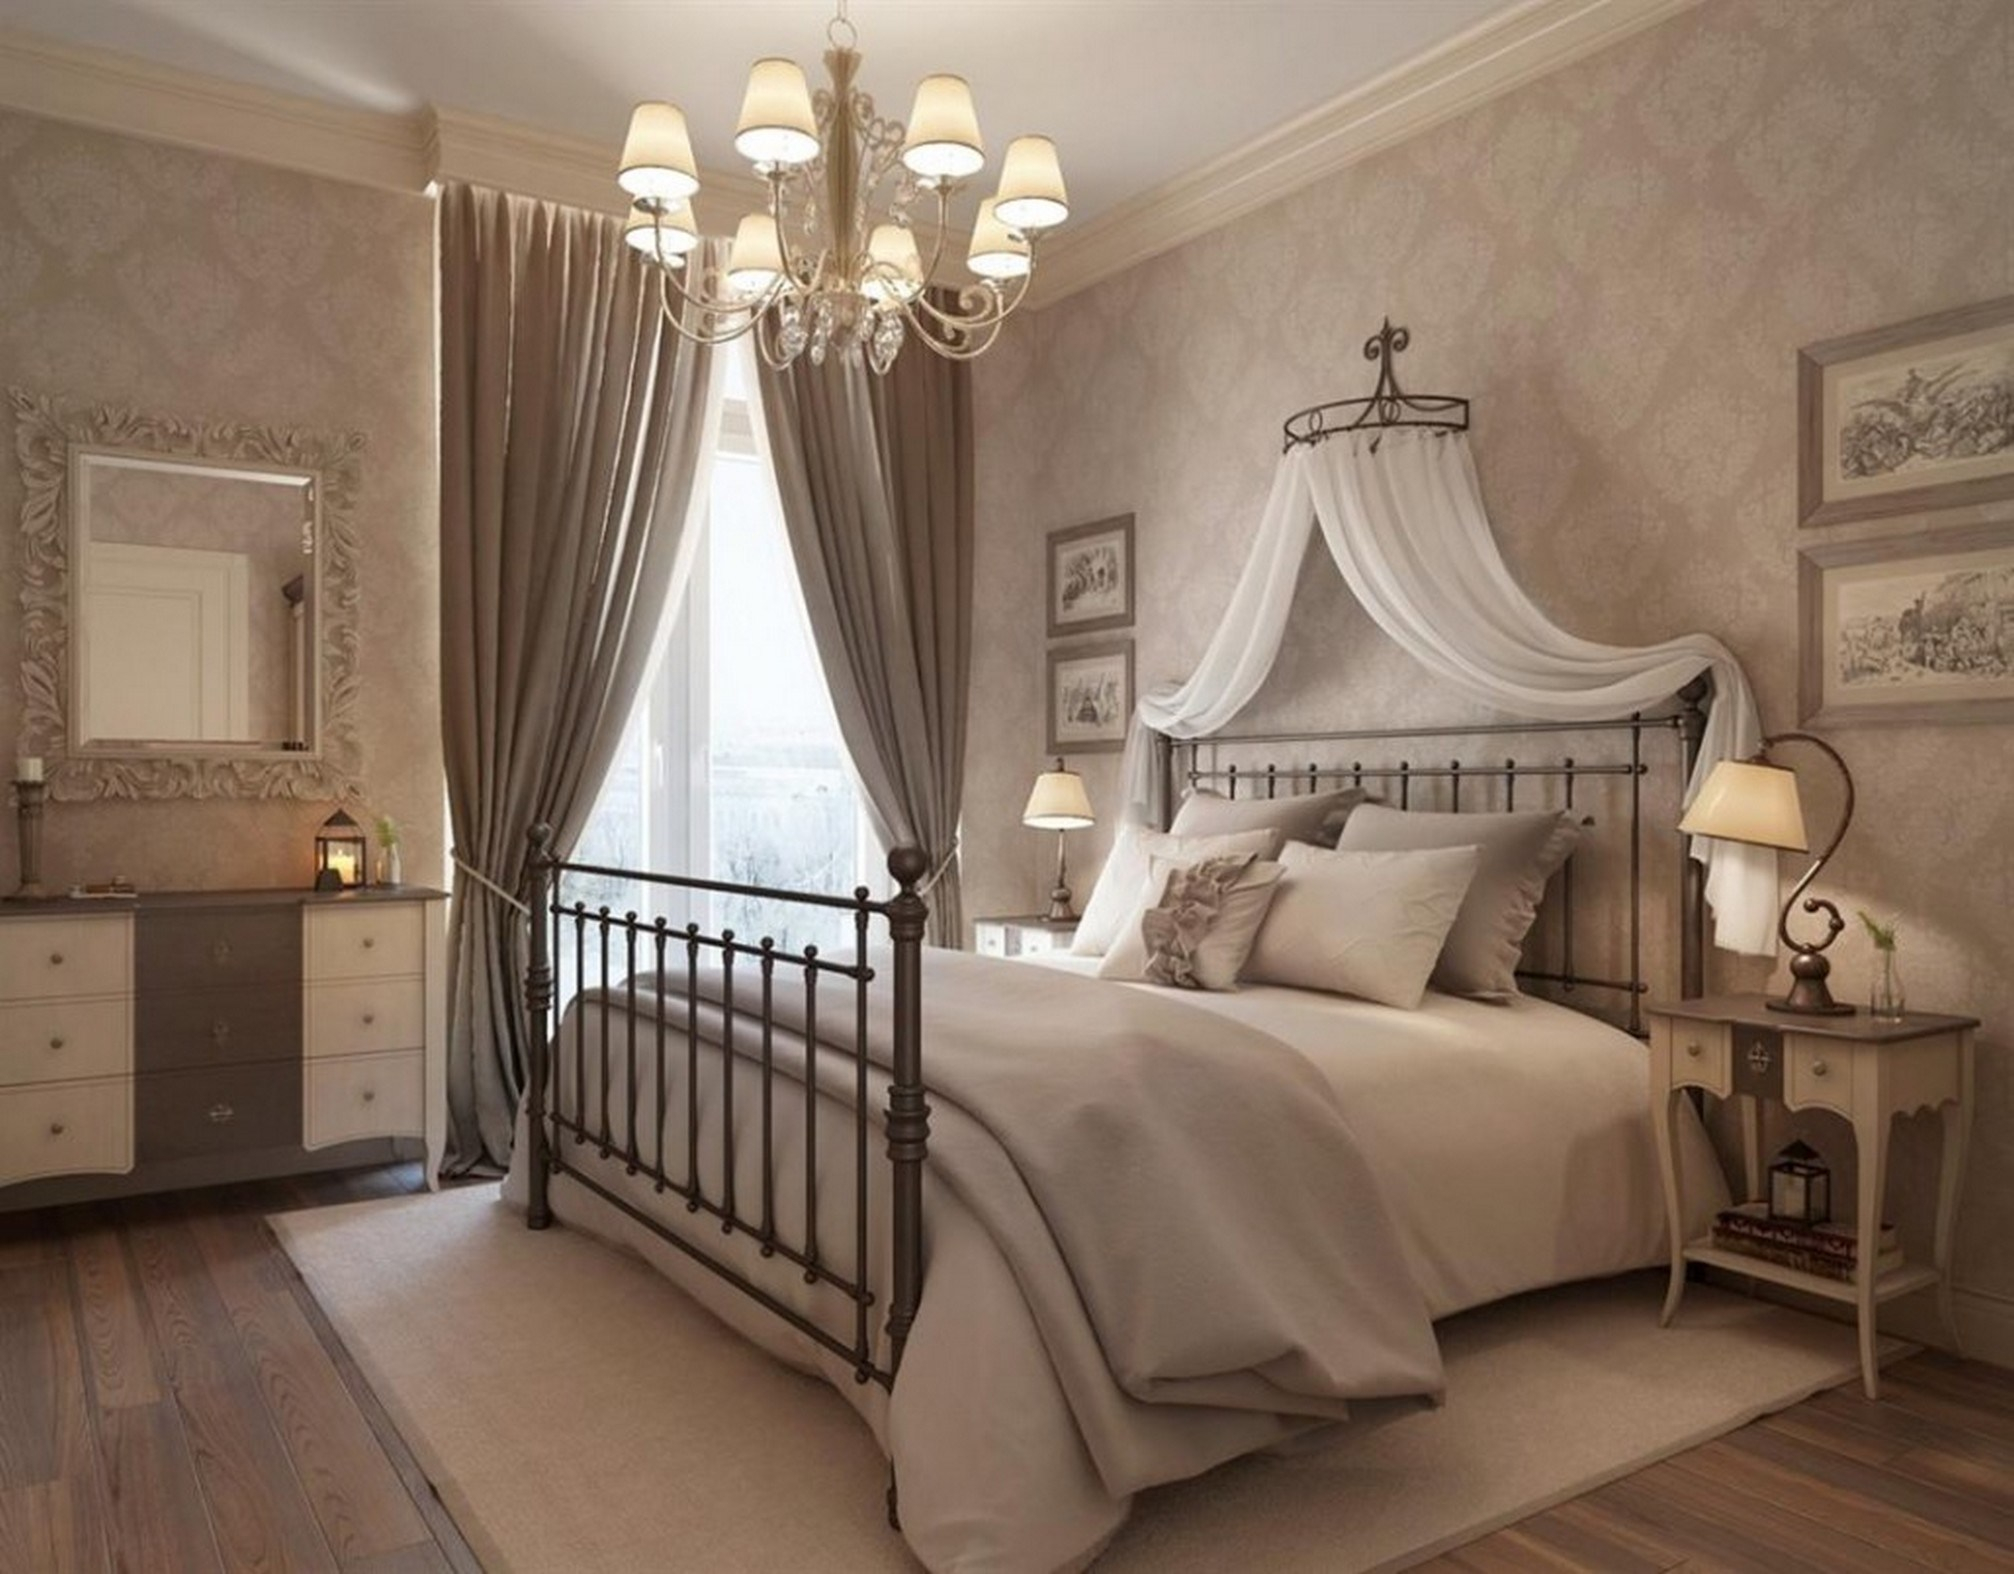 Glamorous 5 Stylish Vintage Bedroom Ideas - This Lady Blogs within Vintage Bedroom